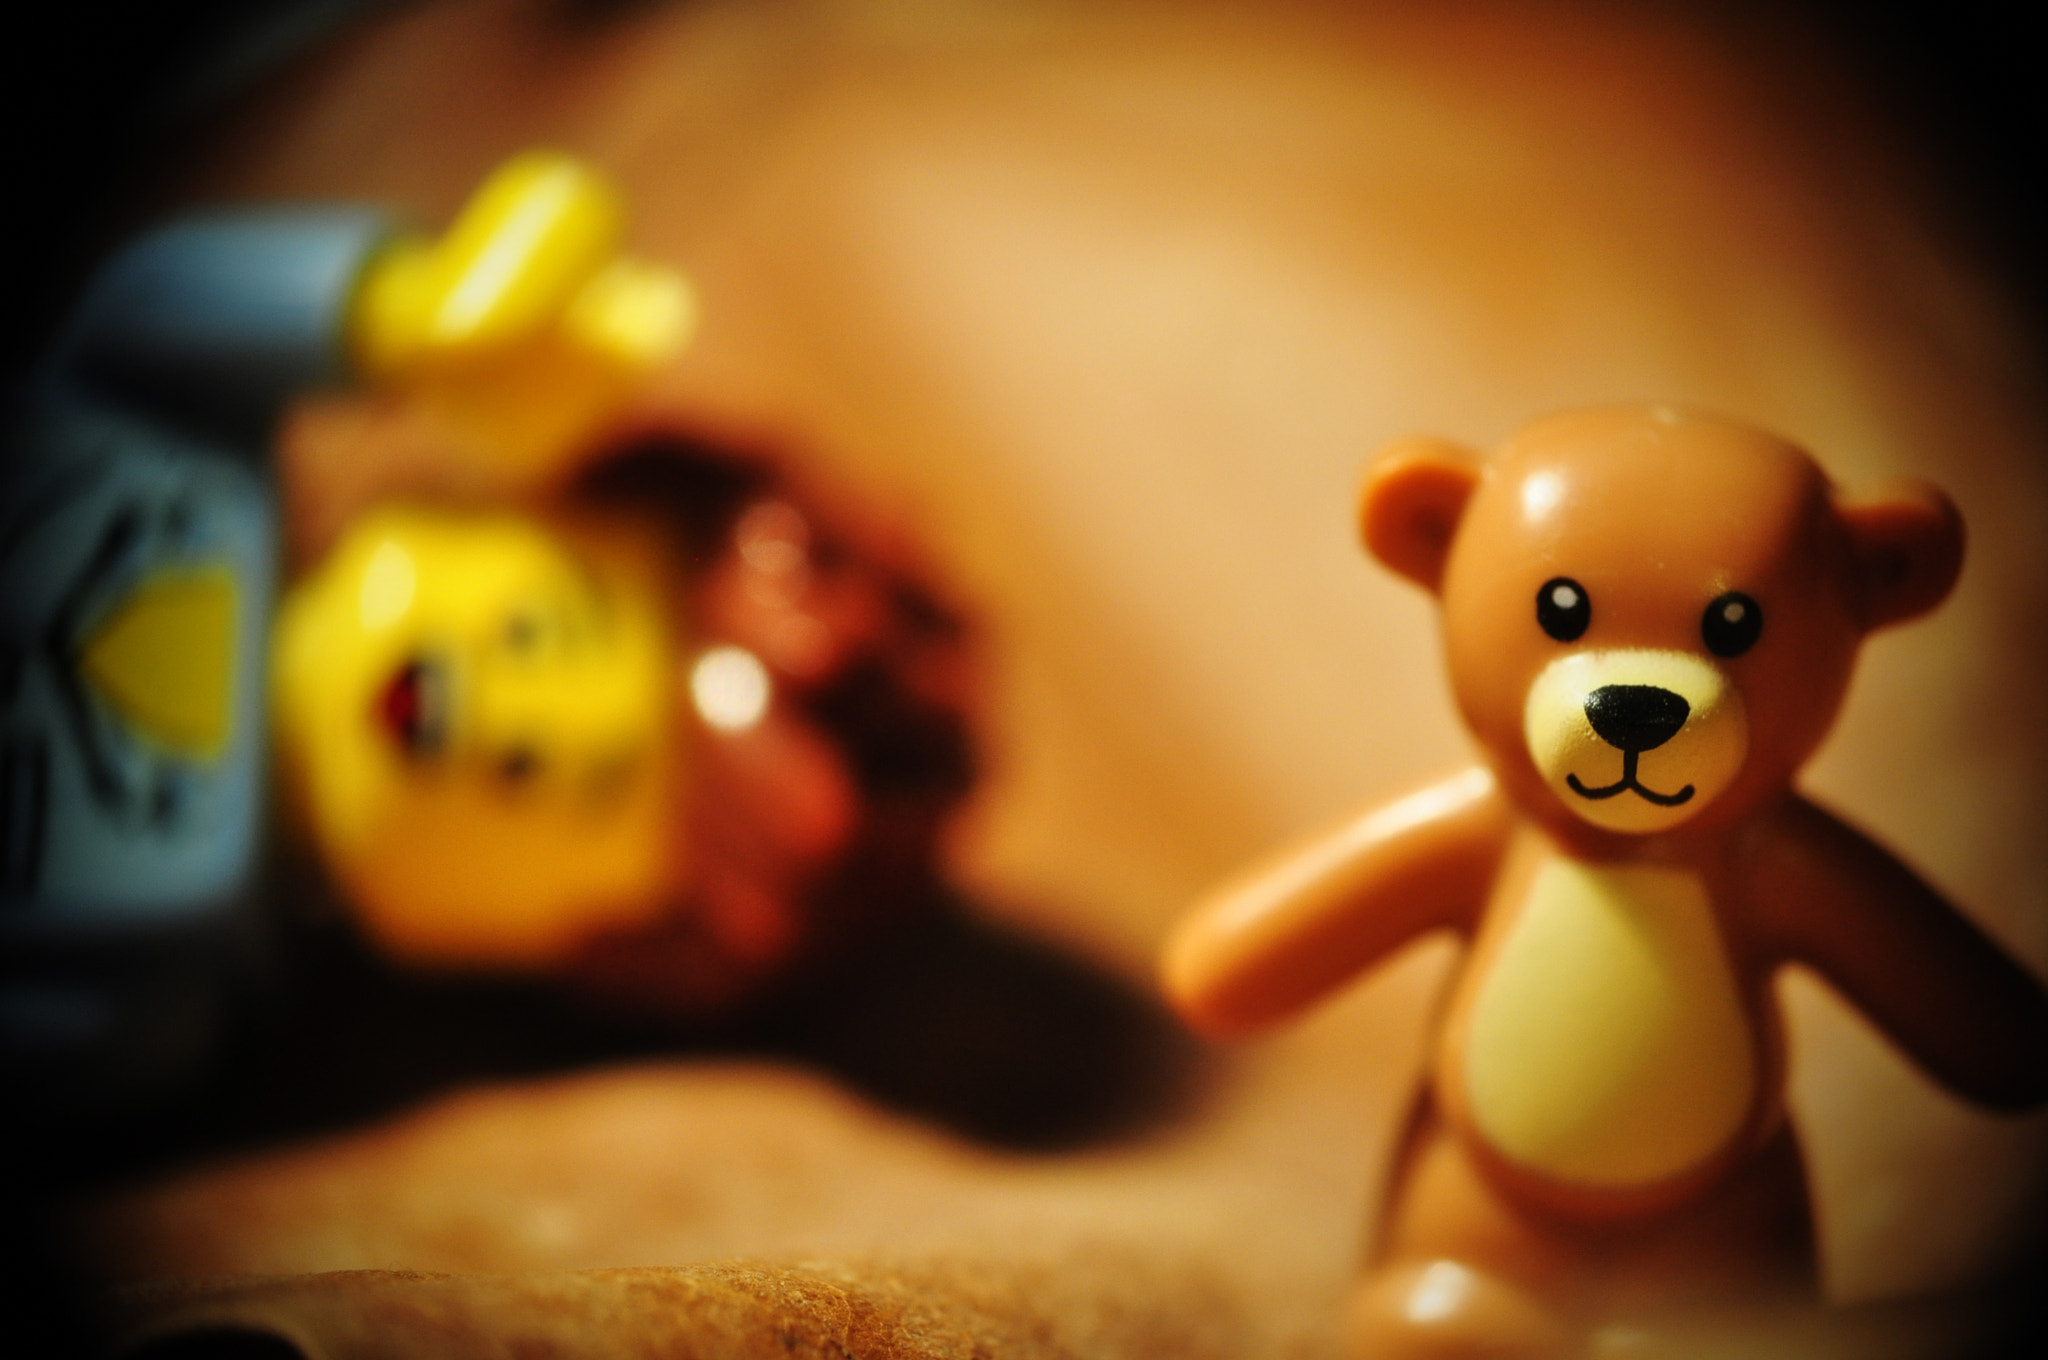 Photograph Teddybear doesn't want to help! by Olivia Dodon on 500px